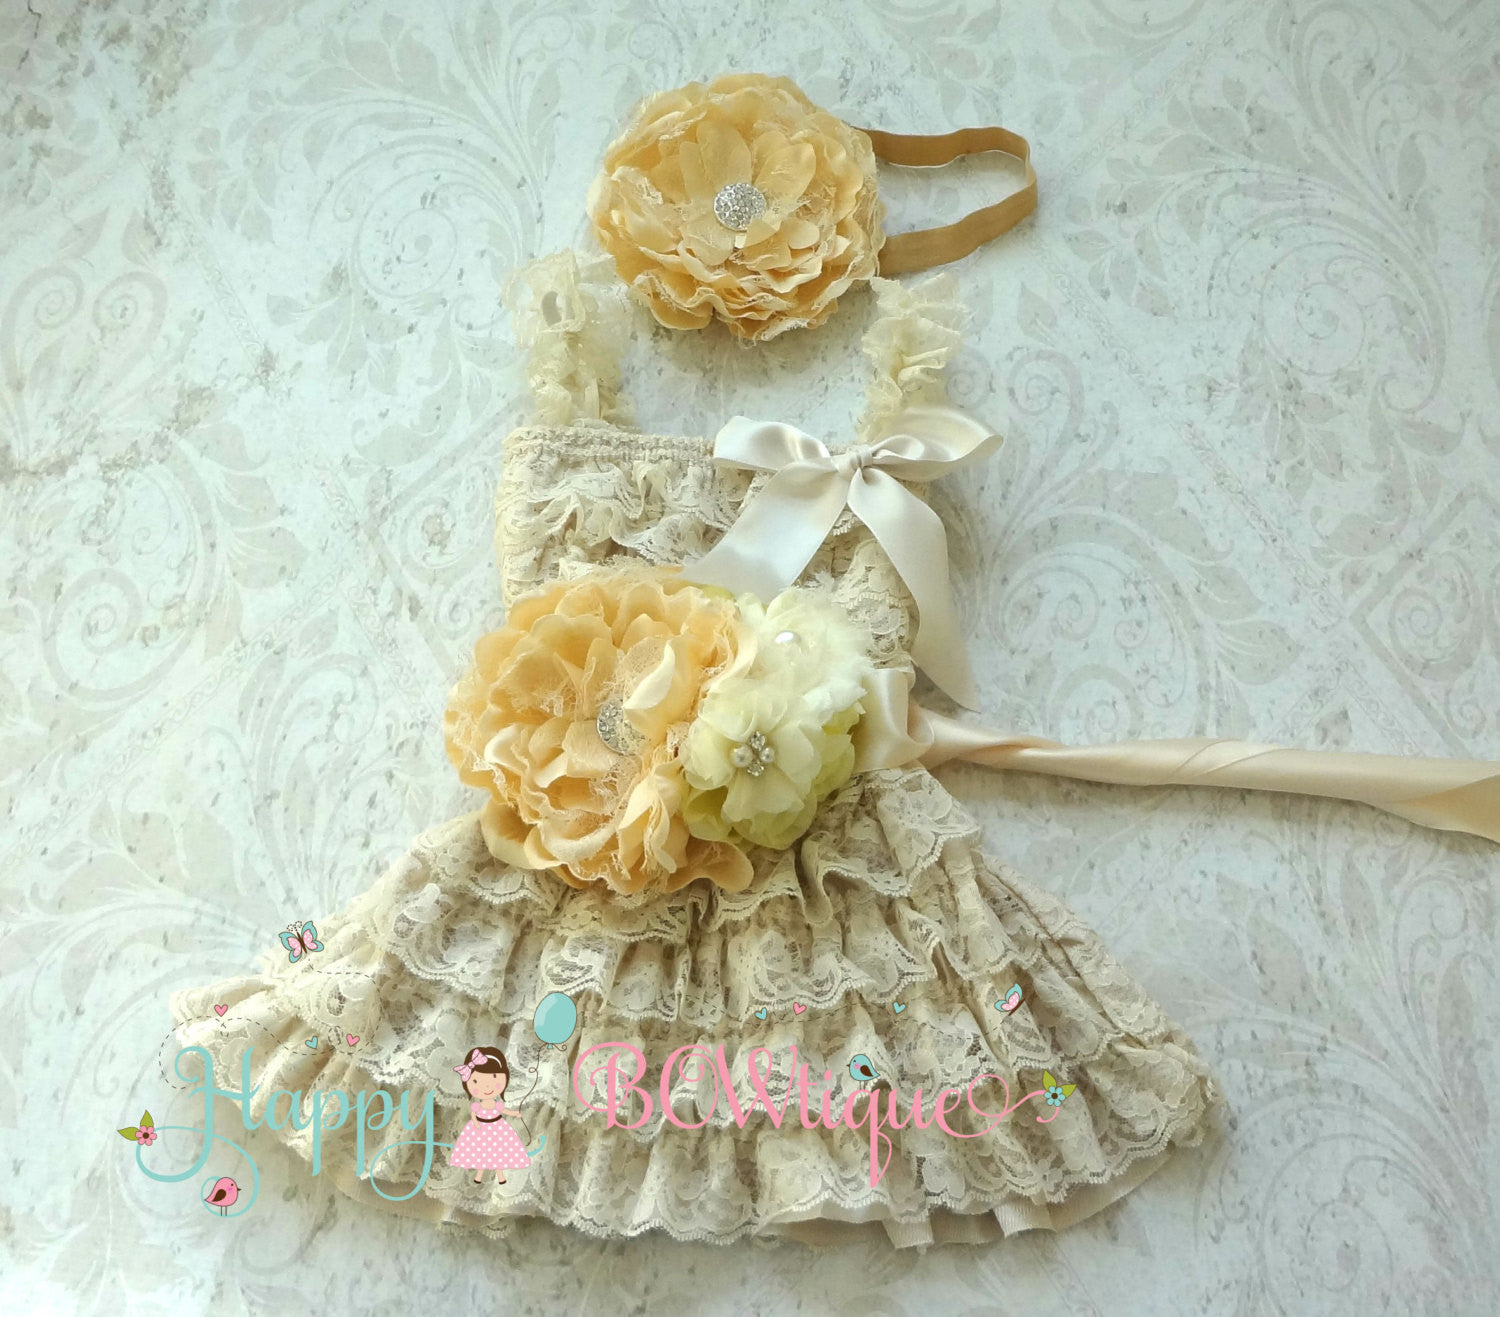 Champage Flower Girl's Dress/ Champage Flower Girl Lace Dress Set - Happy BOWtique - children's clothing, Baby Girl clothing